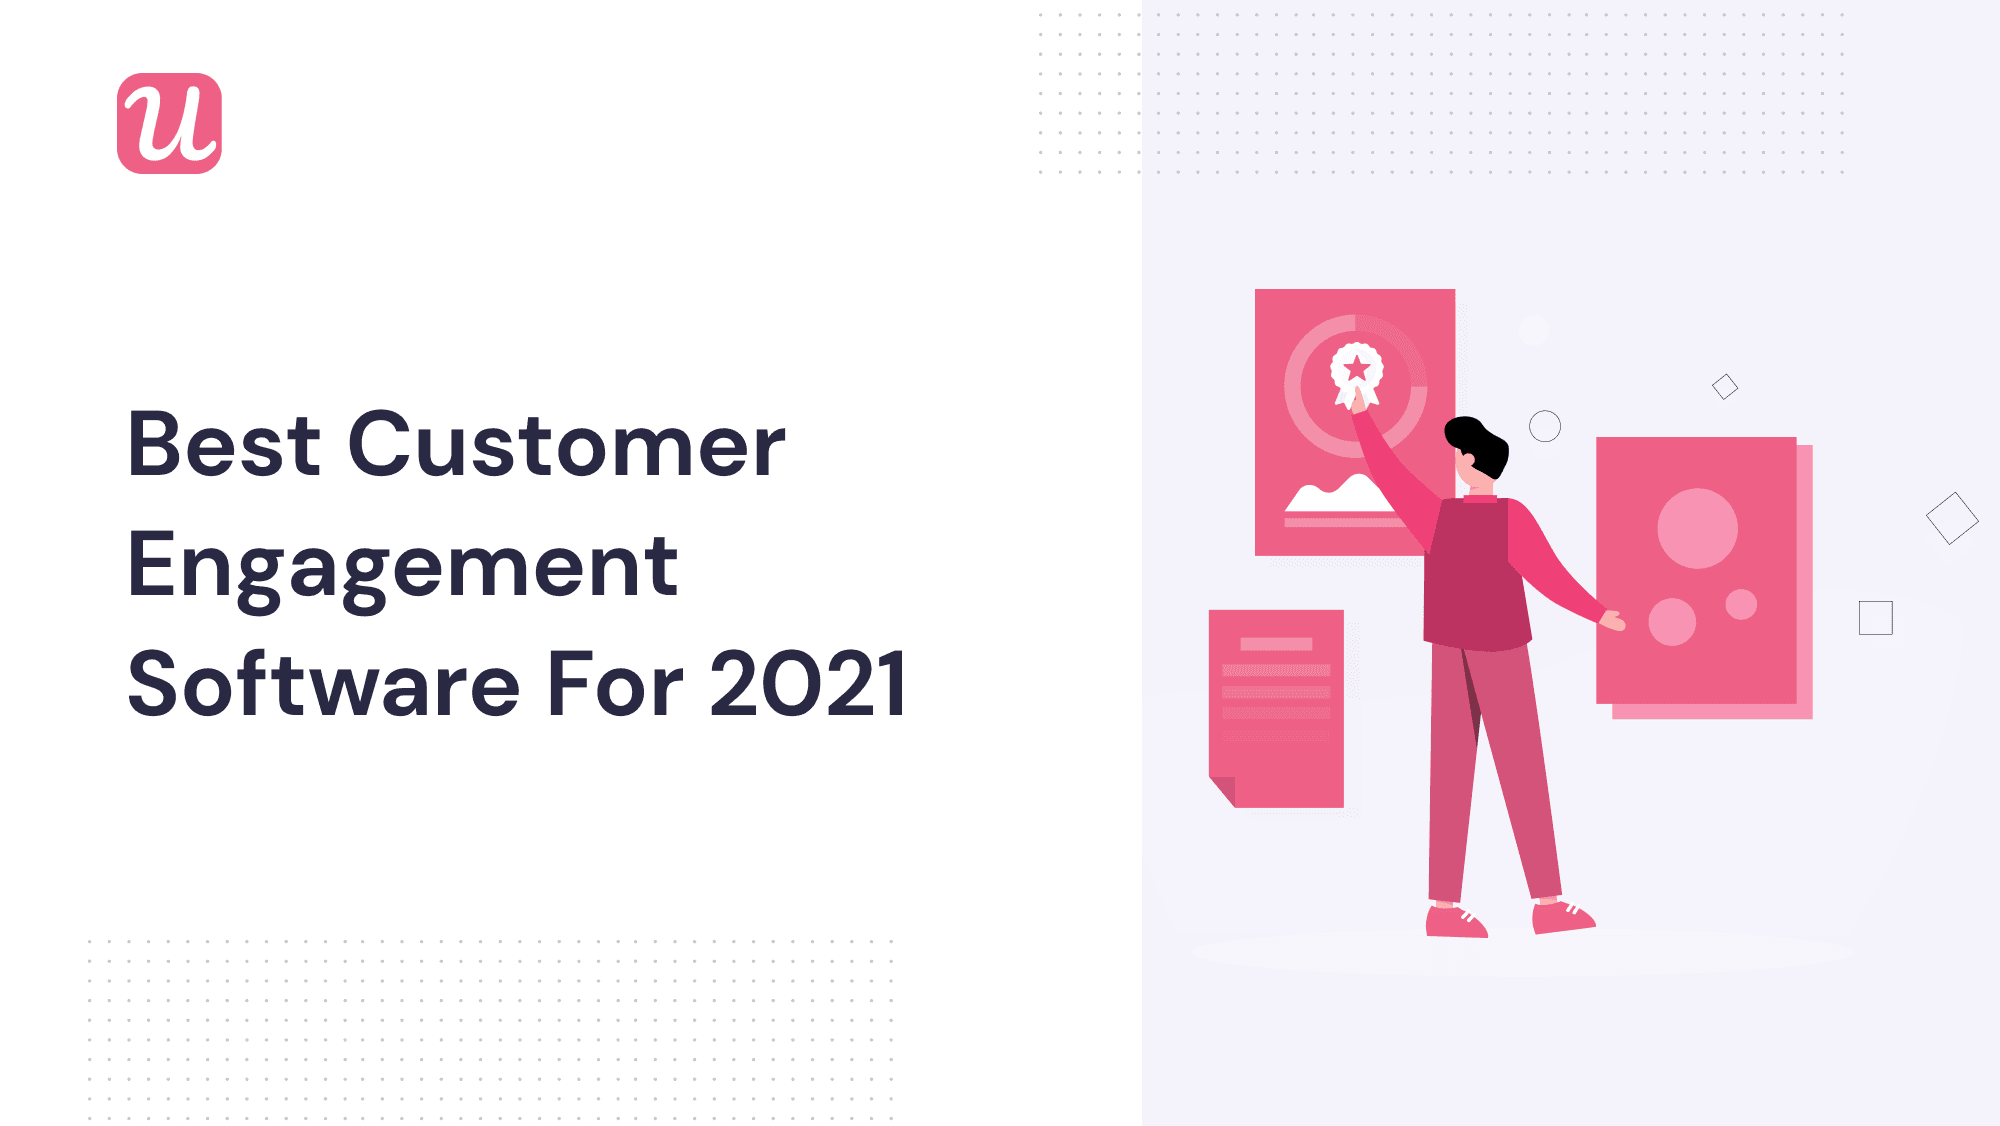 The 9 Best Customer Engagement Software for 2021